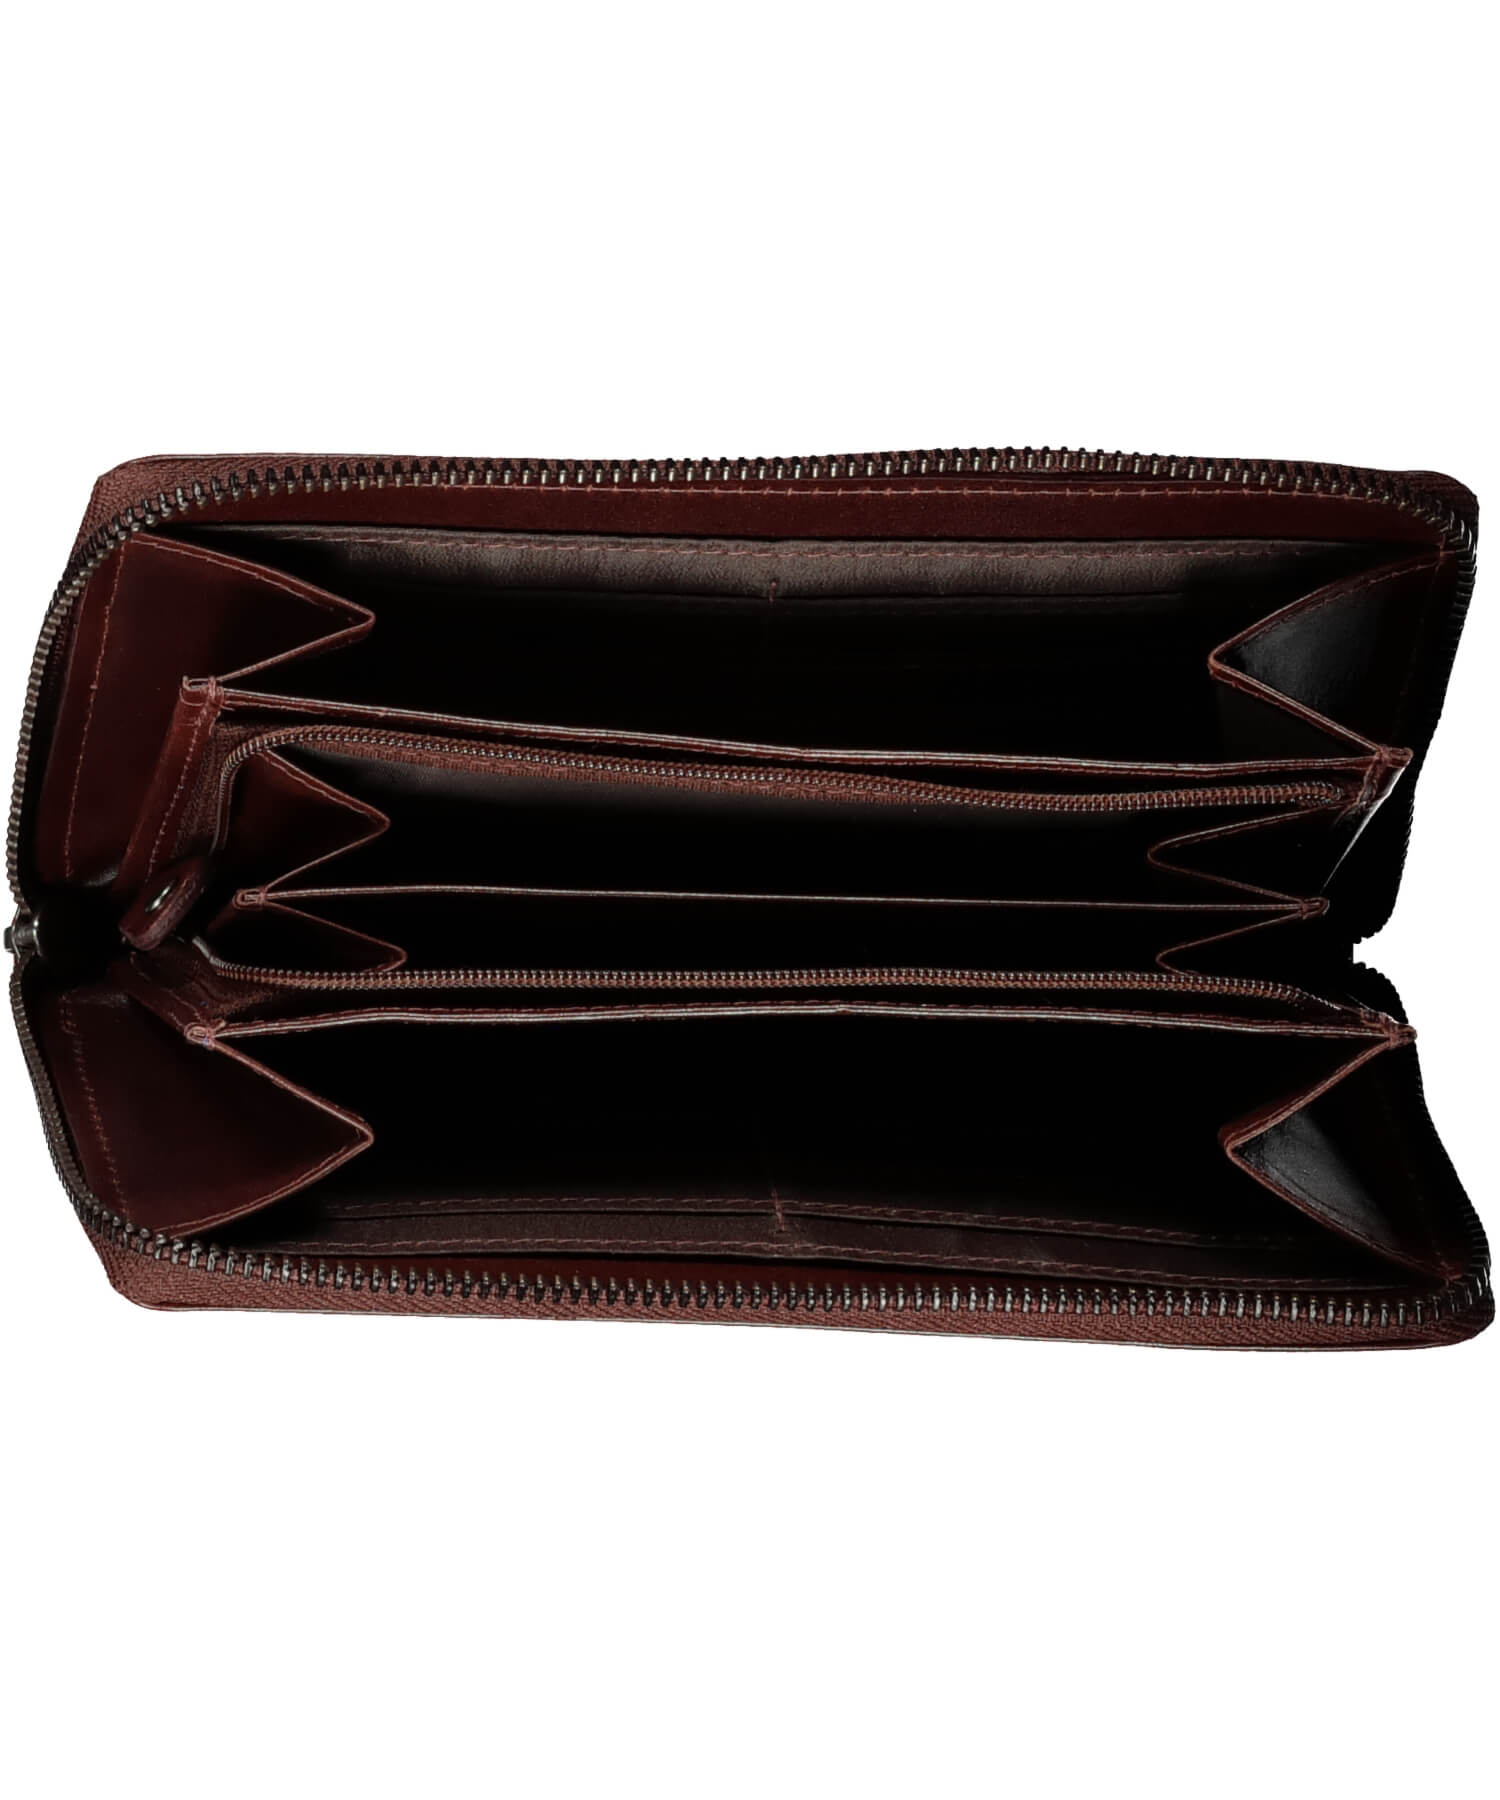 Roisin Ladies Wallet - Brown - [Lee River] - Bags, Purses & Wallets - Irish Gifts